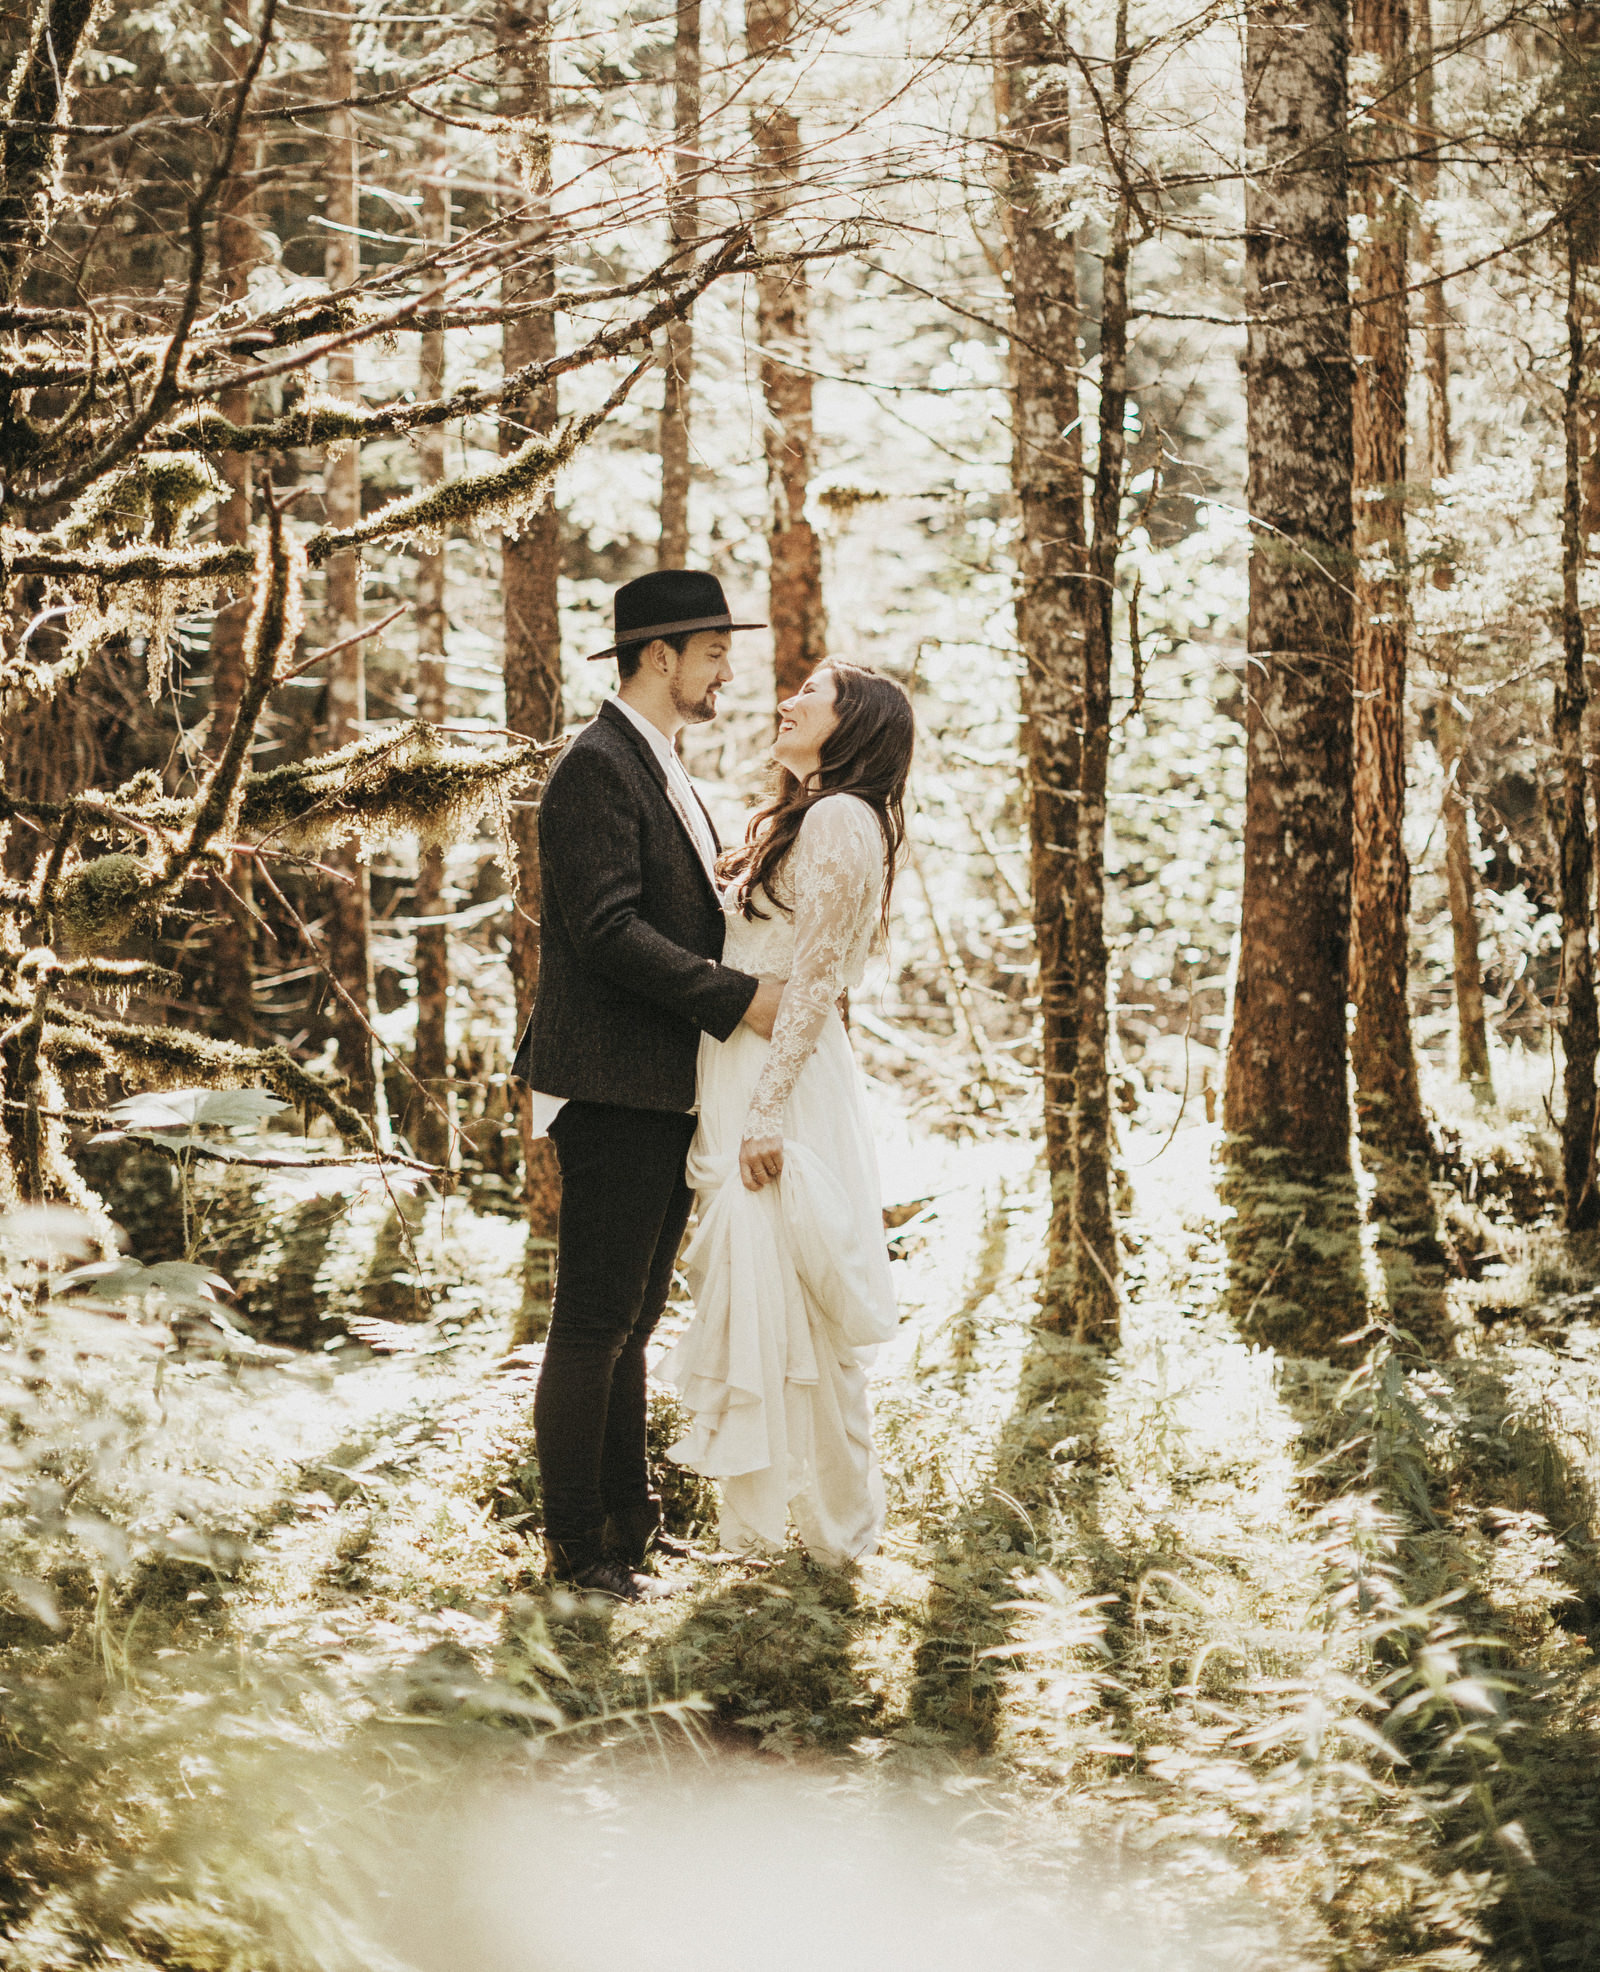 athena-and-camron-alaska-elopement-wedding-inspiration-india-earl-athena-grace-glacier-lagoon-wedding24